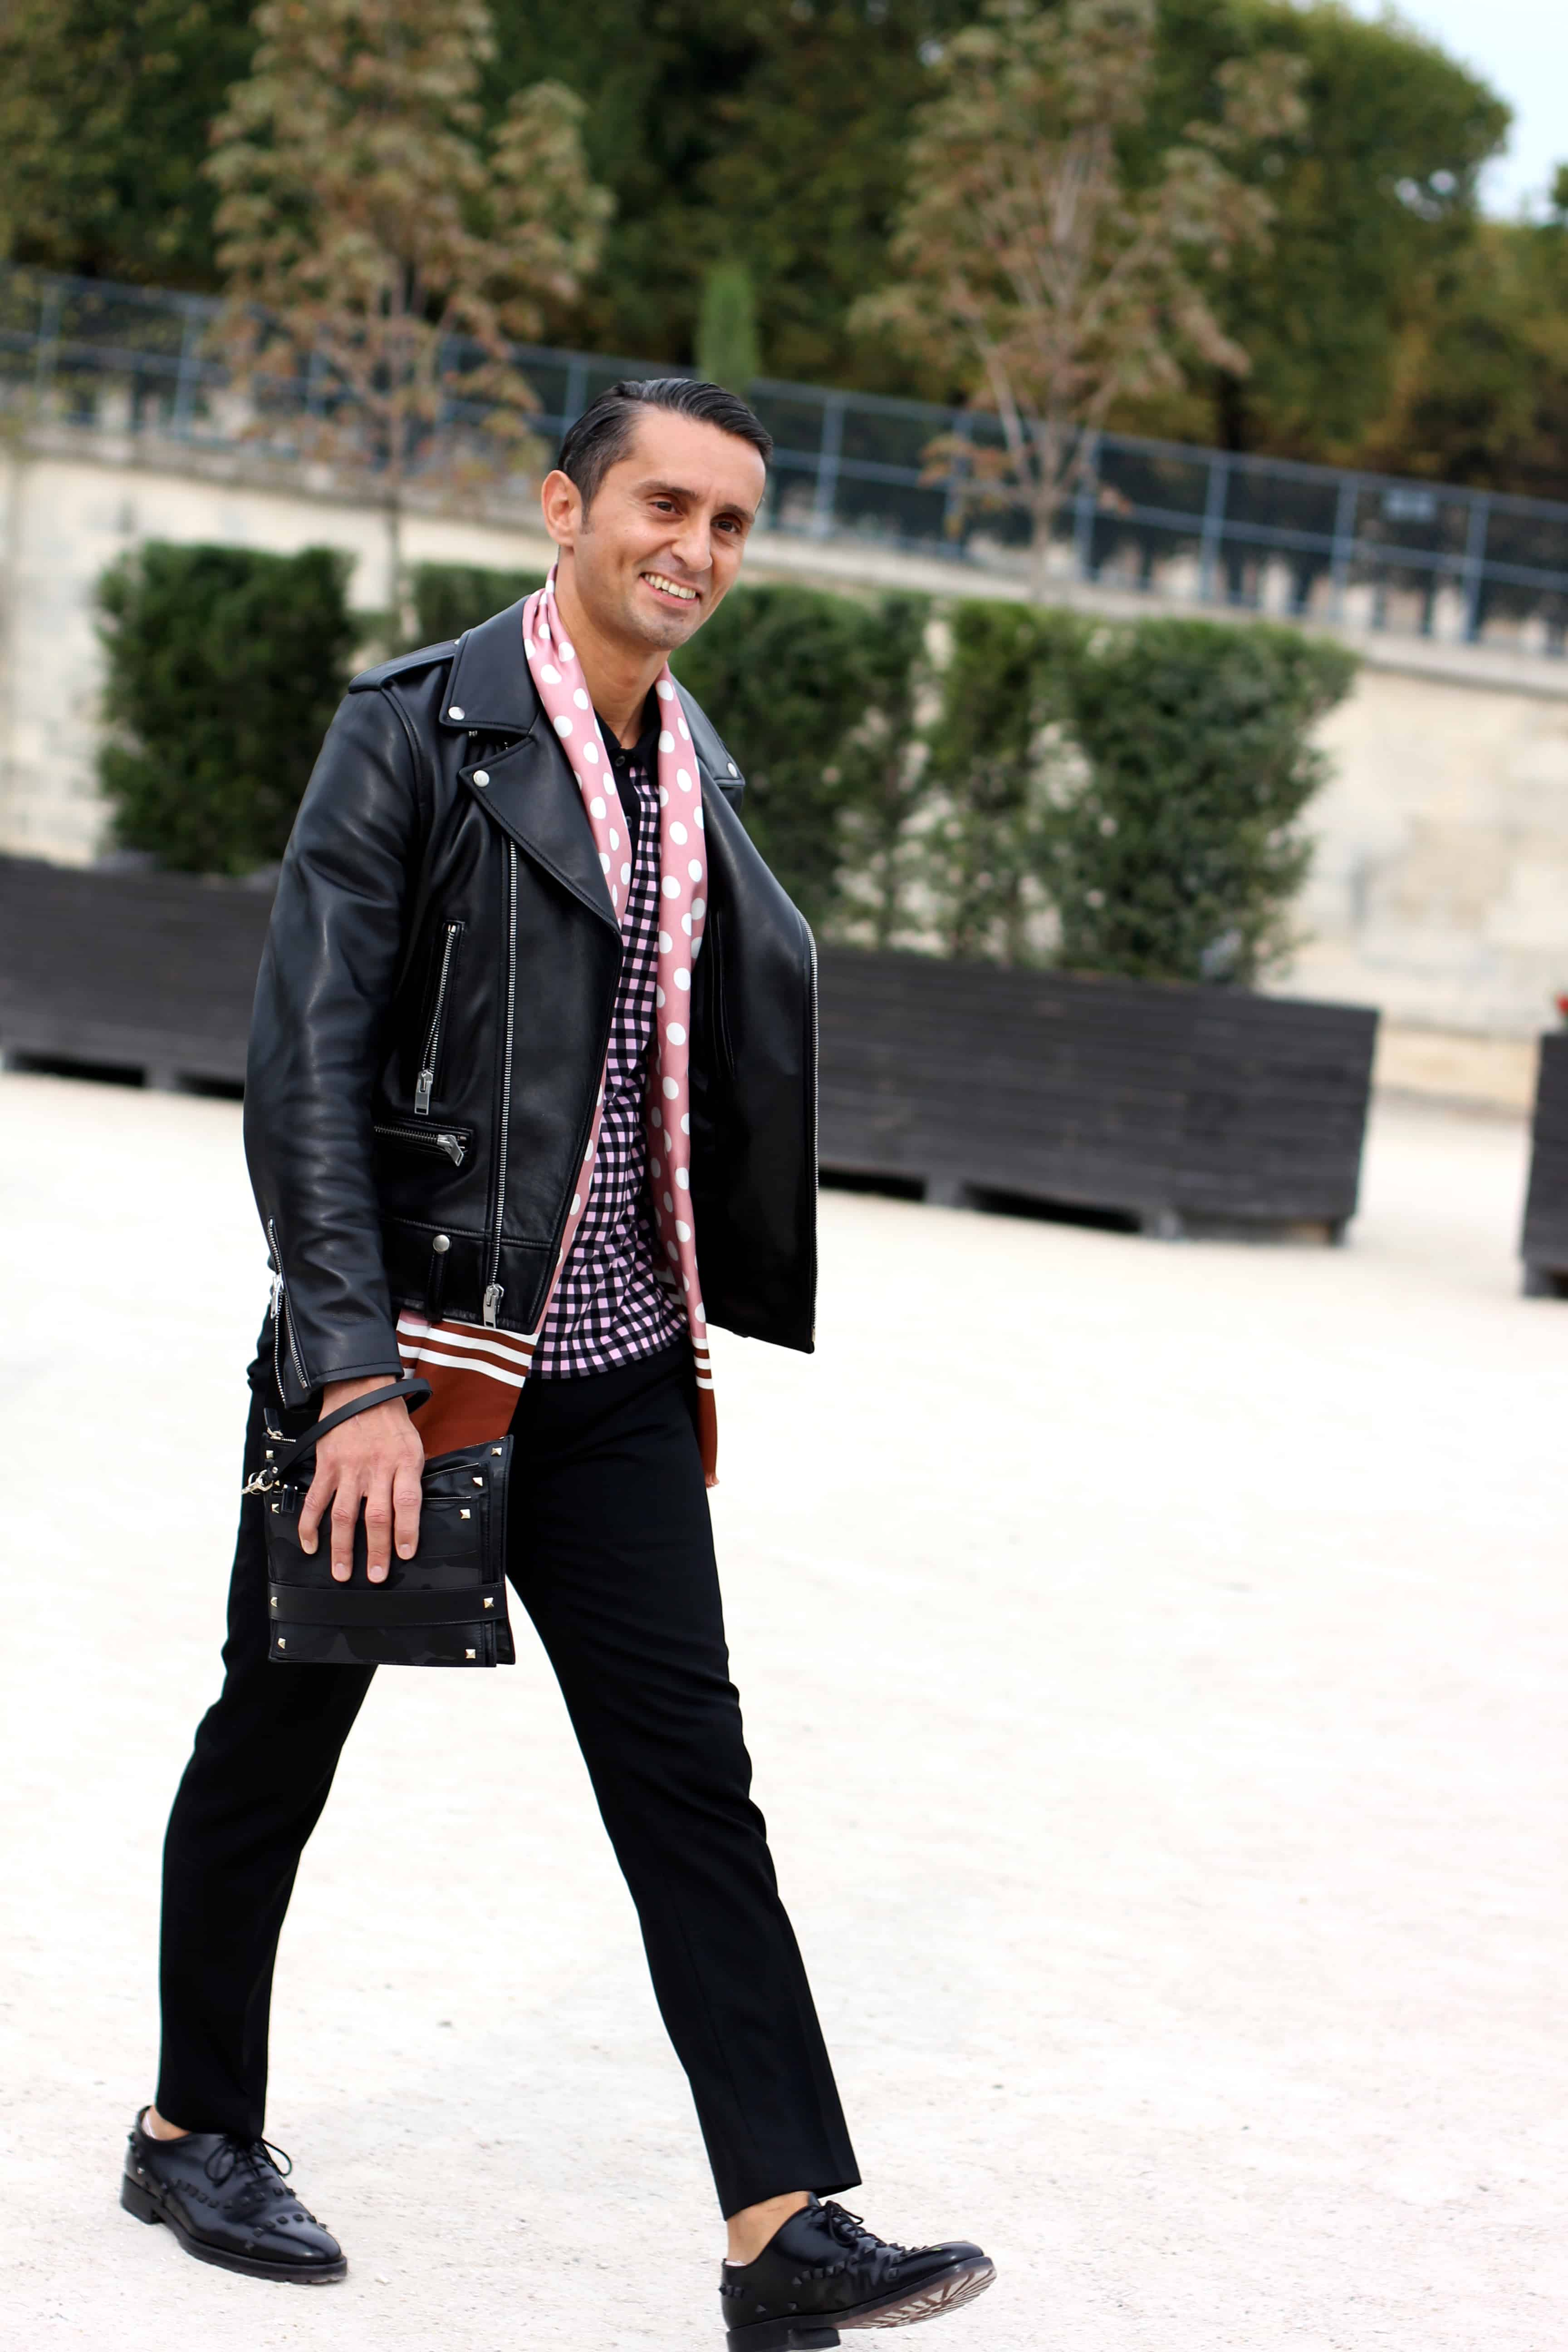 Leather Jackets For Men: How To Wear Them In 2017 Spring? – The ...